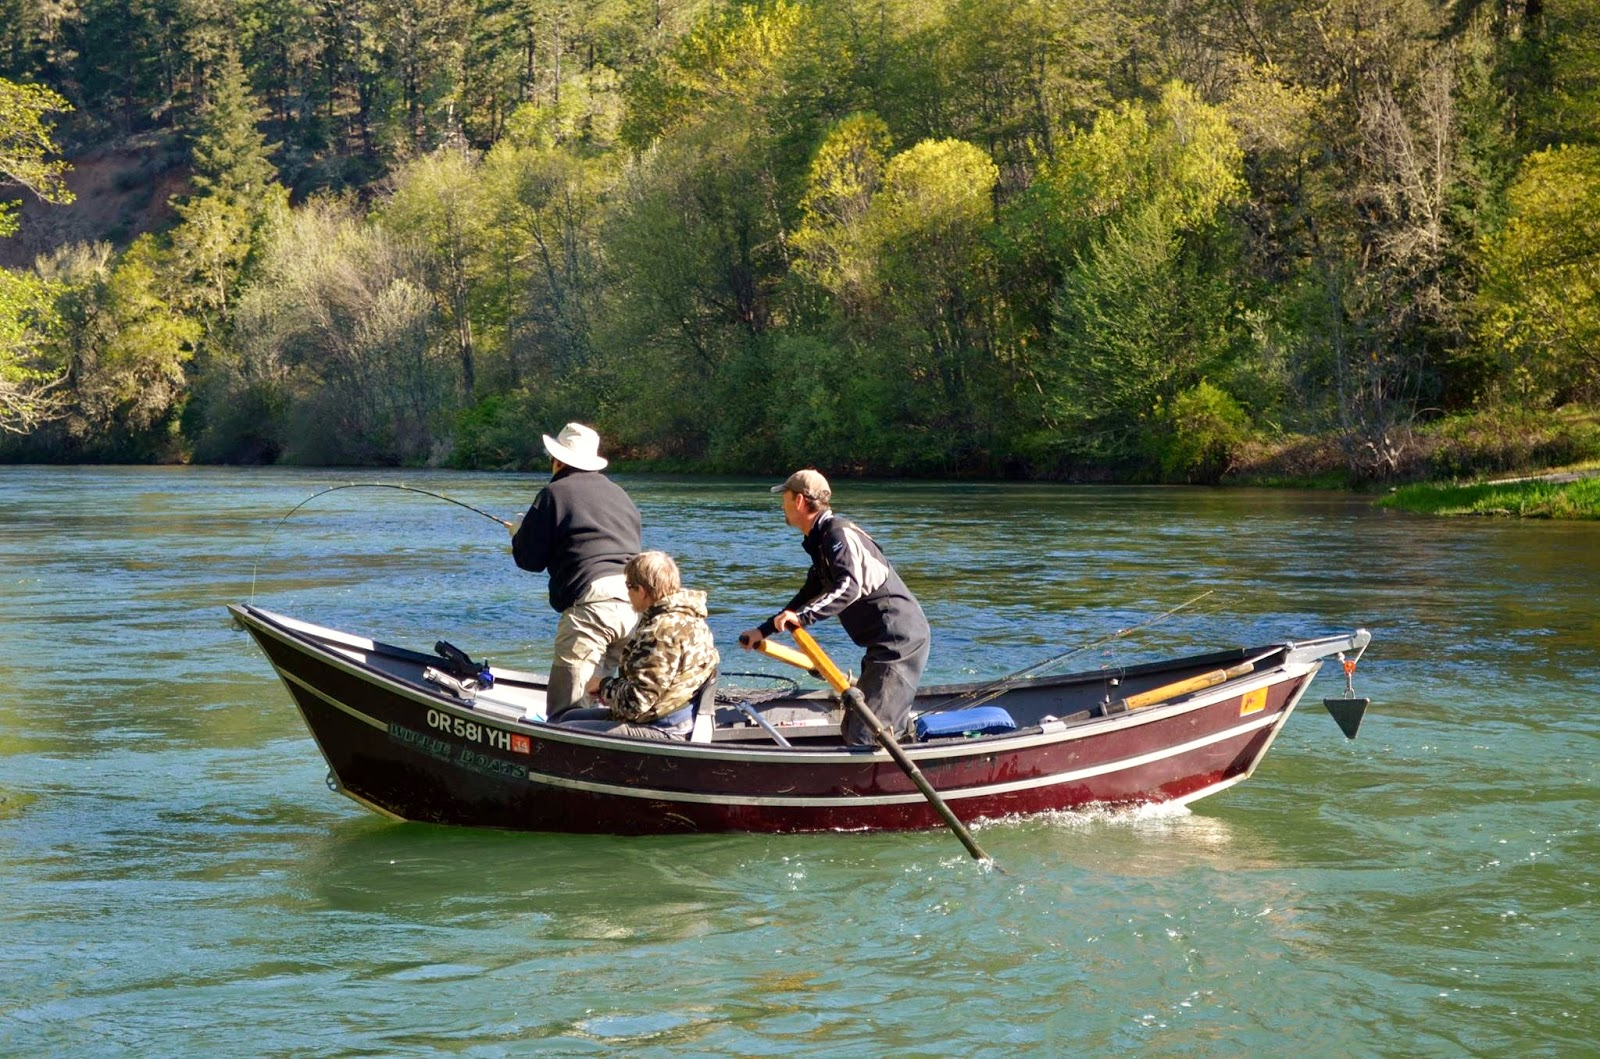 rogue river salmon steelhead fishing guides rogue river